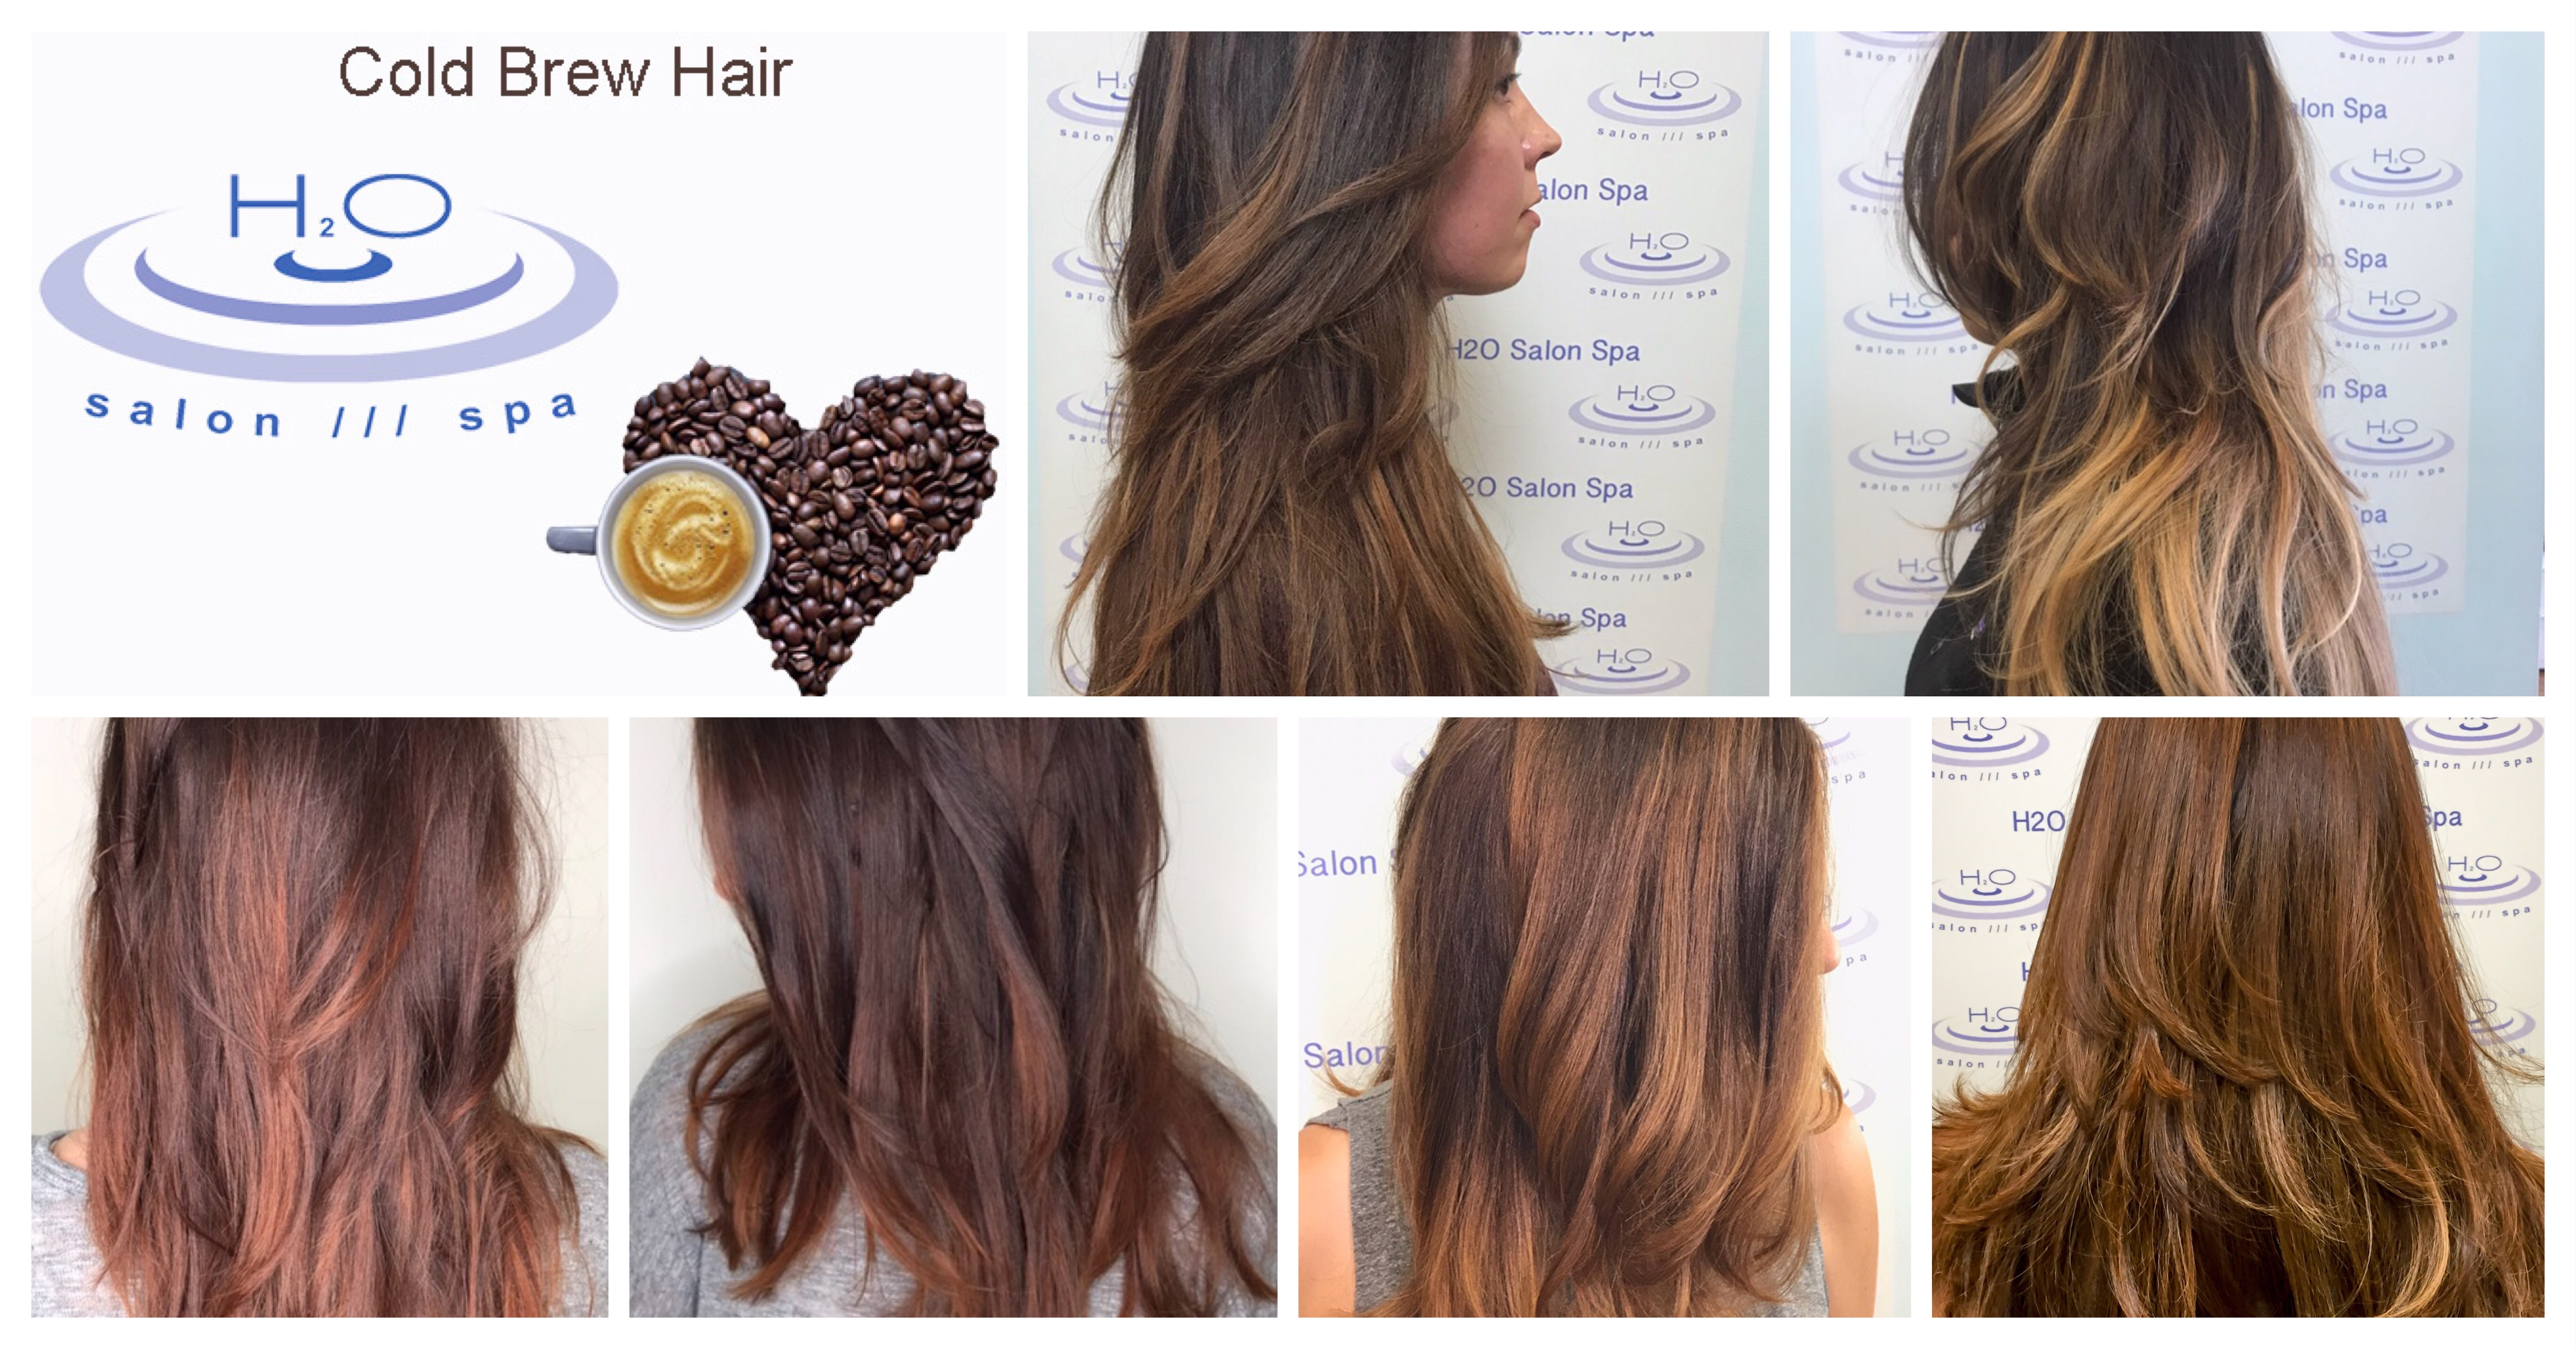 Cold Brew Hair H2O Salon Spa Trends